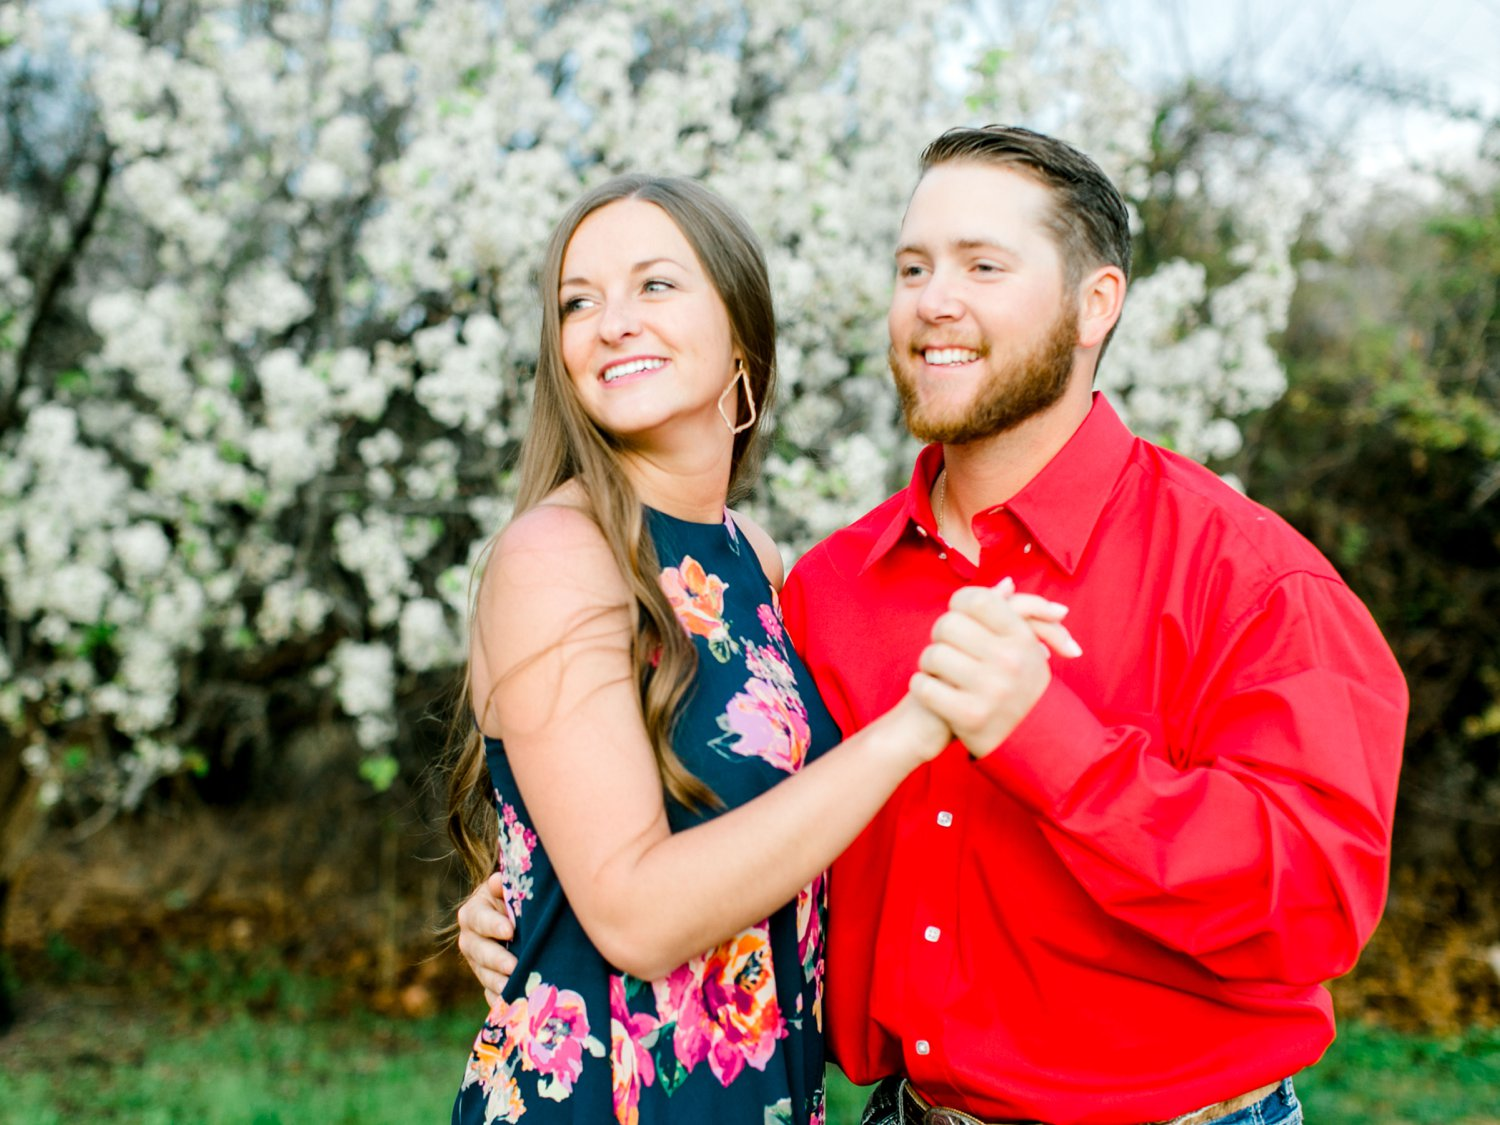 bailey-and-scotland-church-engagement-lubbock-photographer0011.jpg